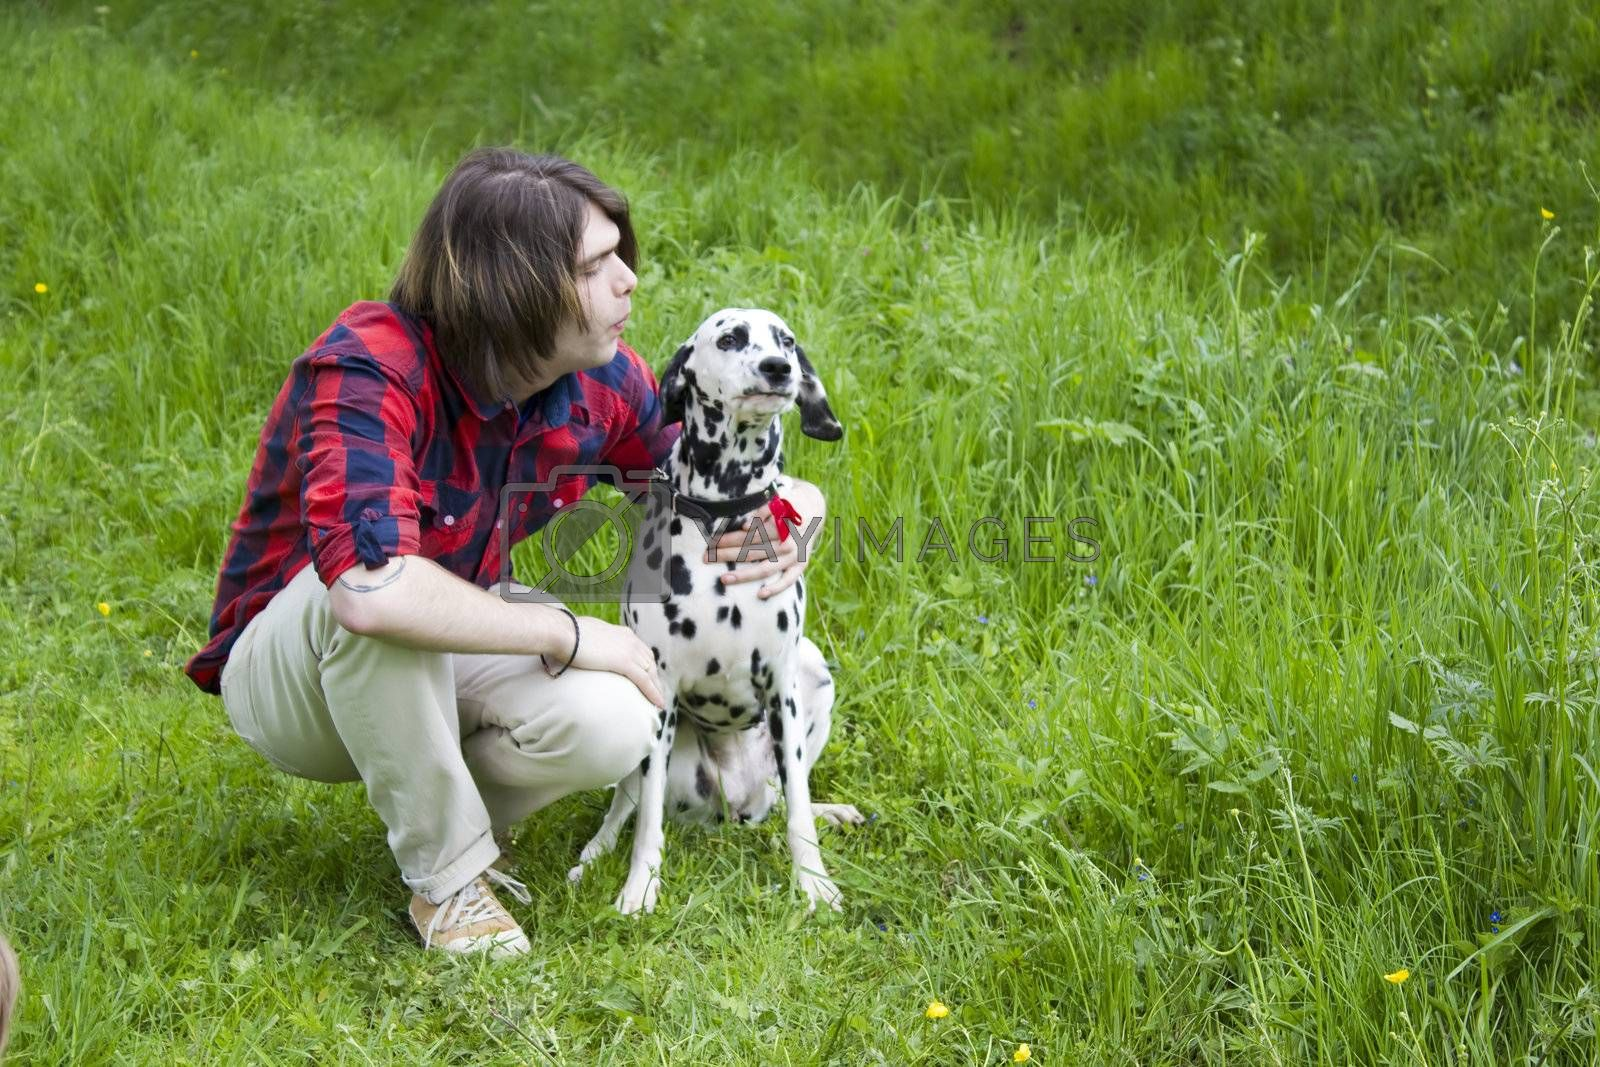 boy and the dalmatian dog